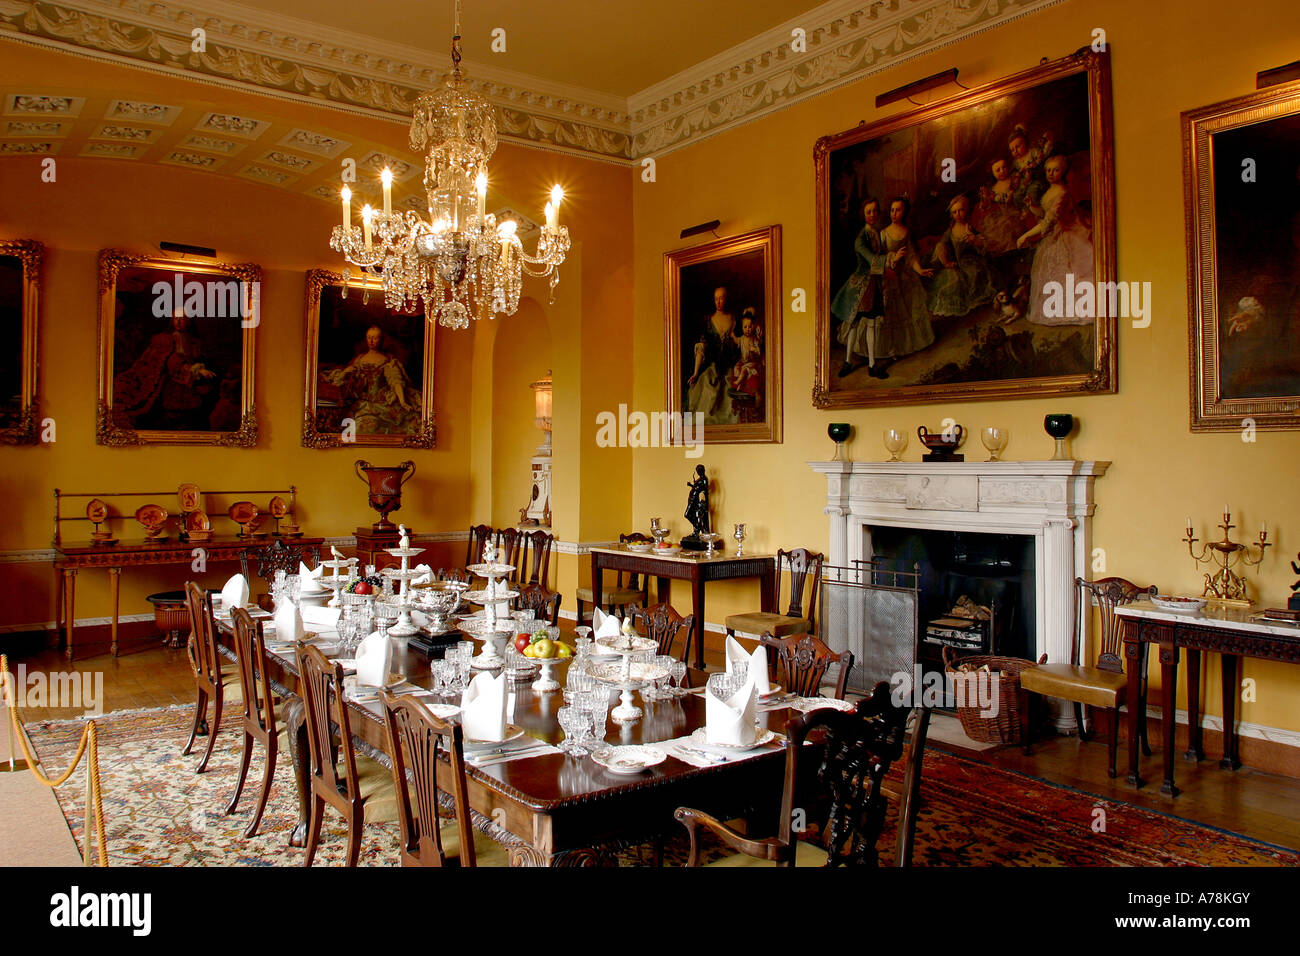 Uk yorkshire ripon newby hall regency dining room stock for Regency dining room